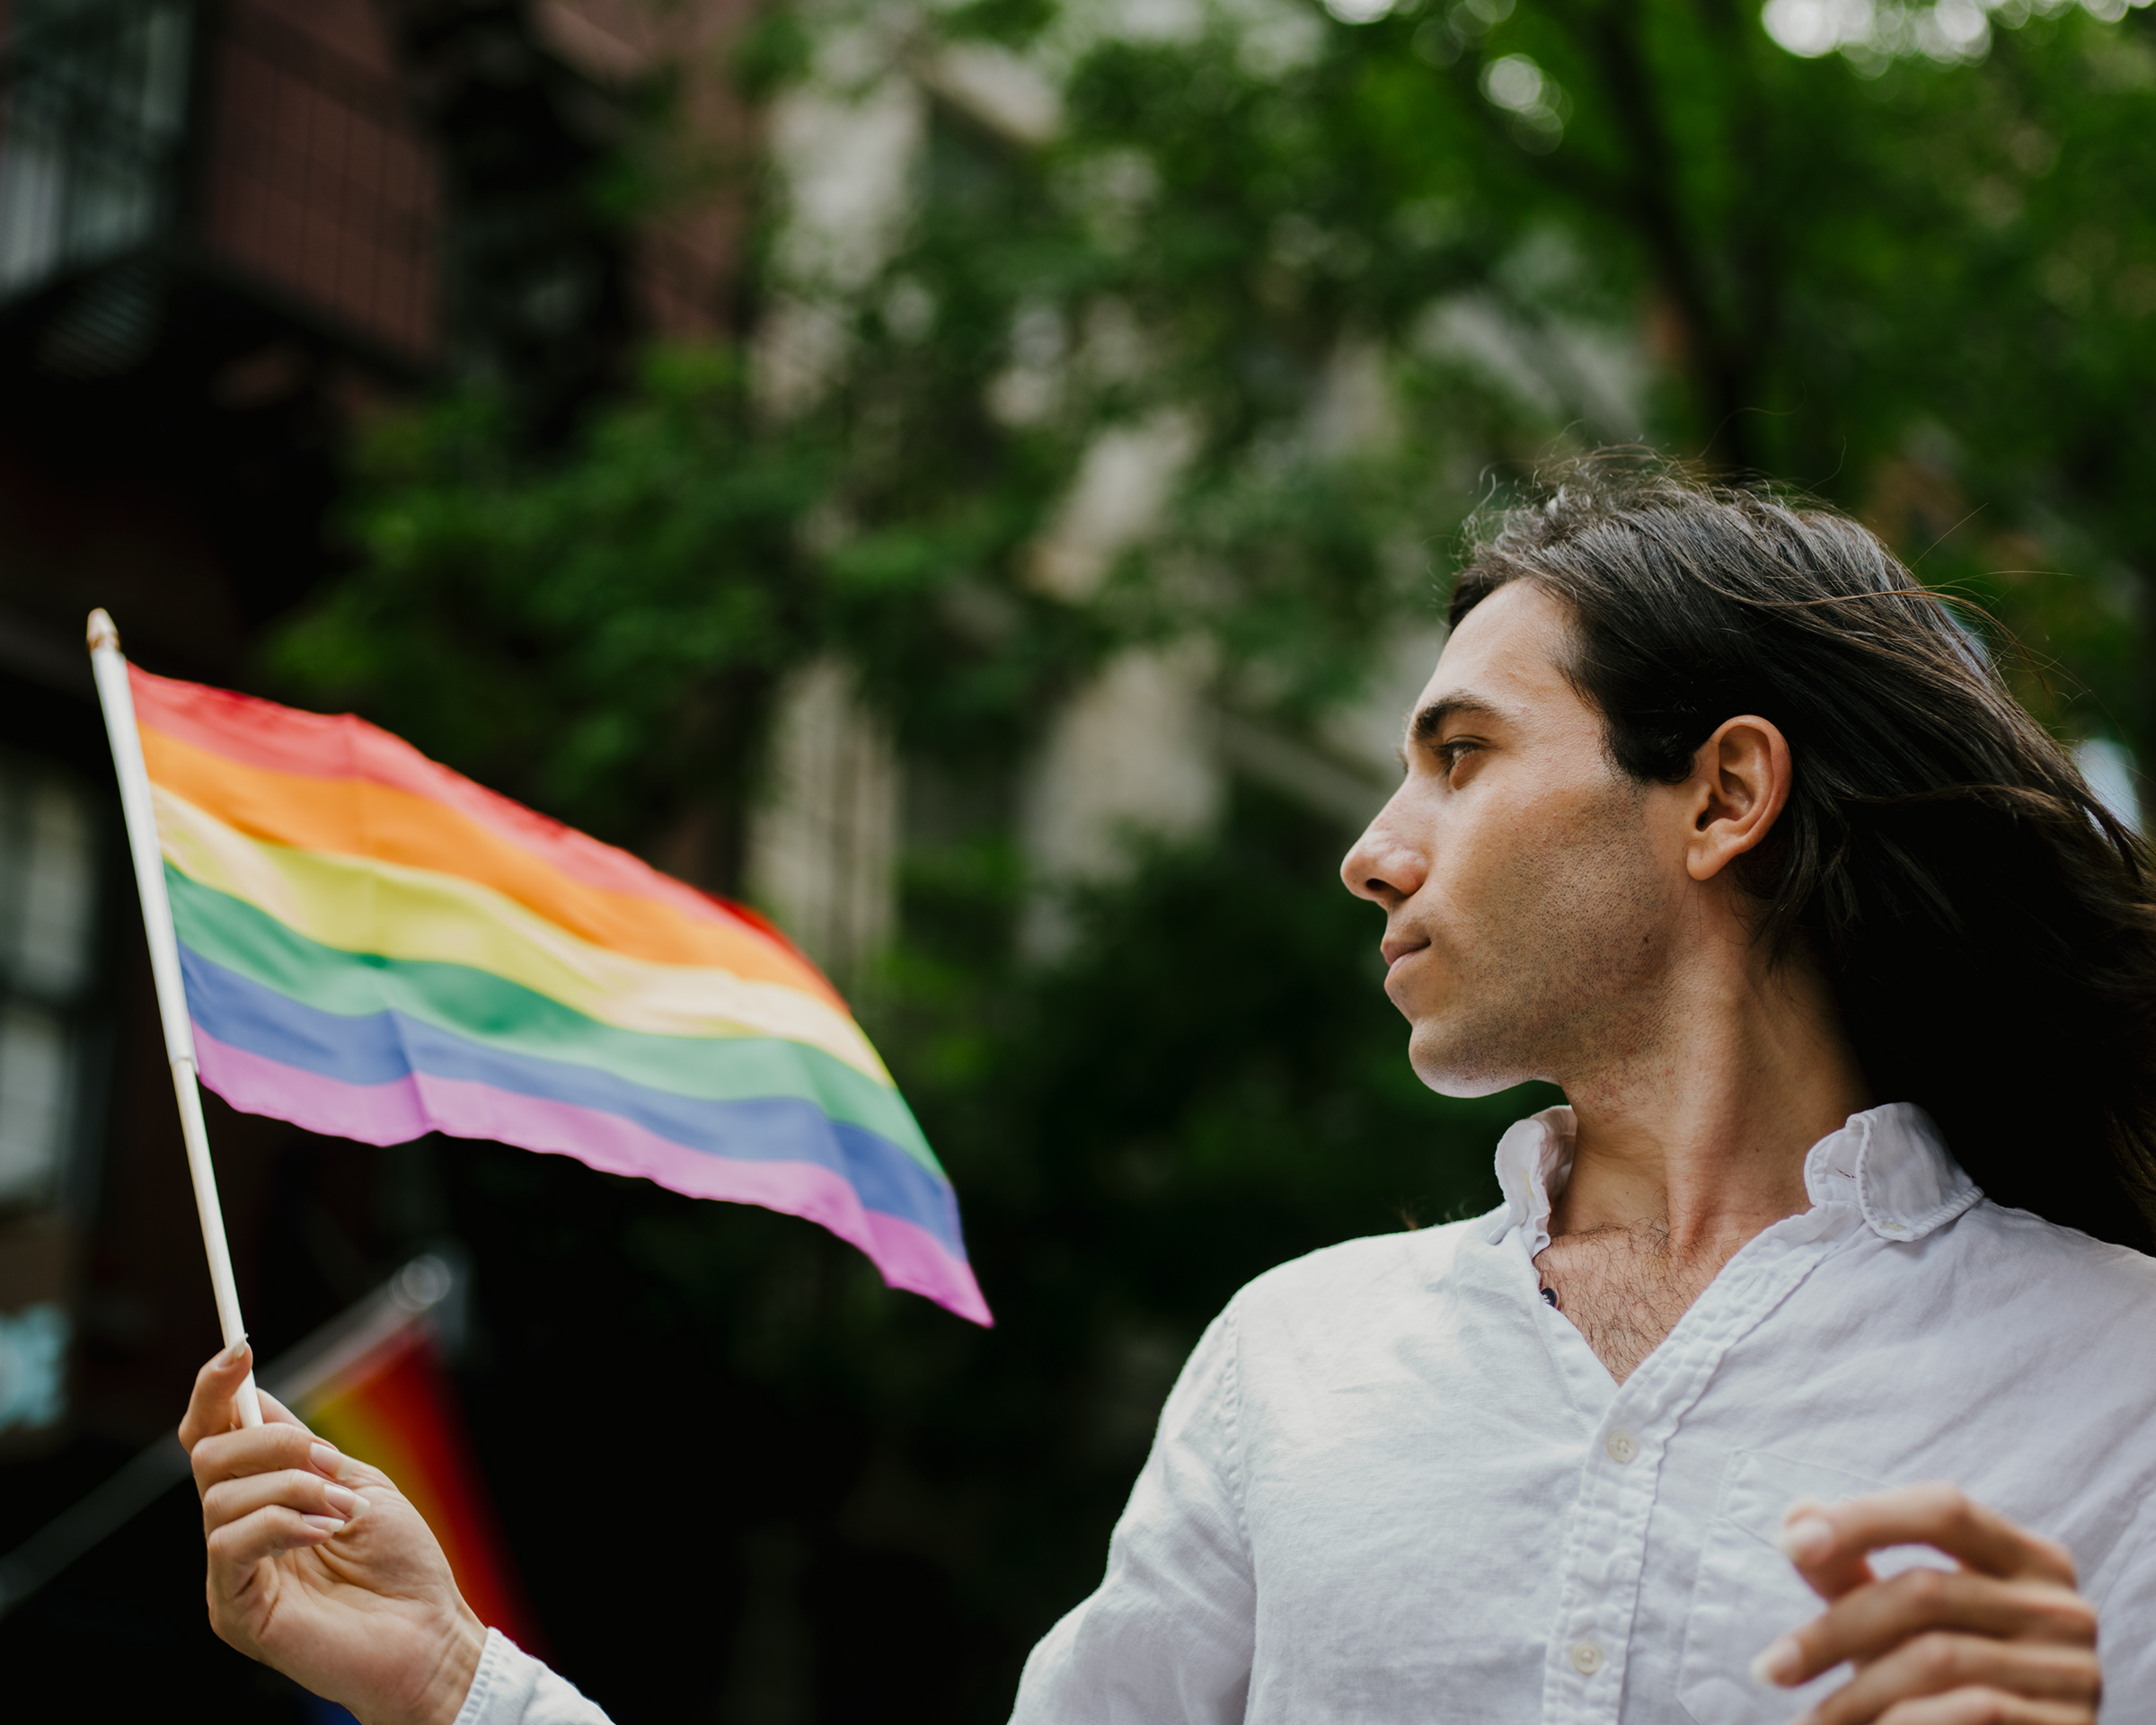 Amin Dzhabrailov in New York during WorldPride, on June 30, 2019.